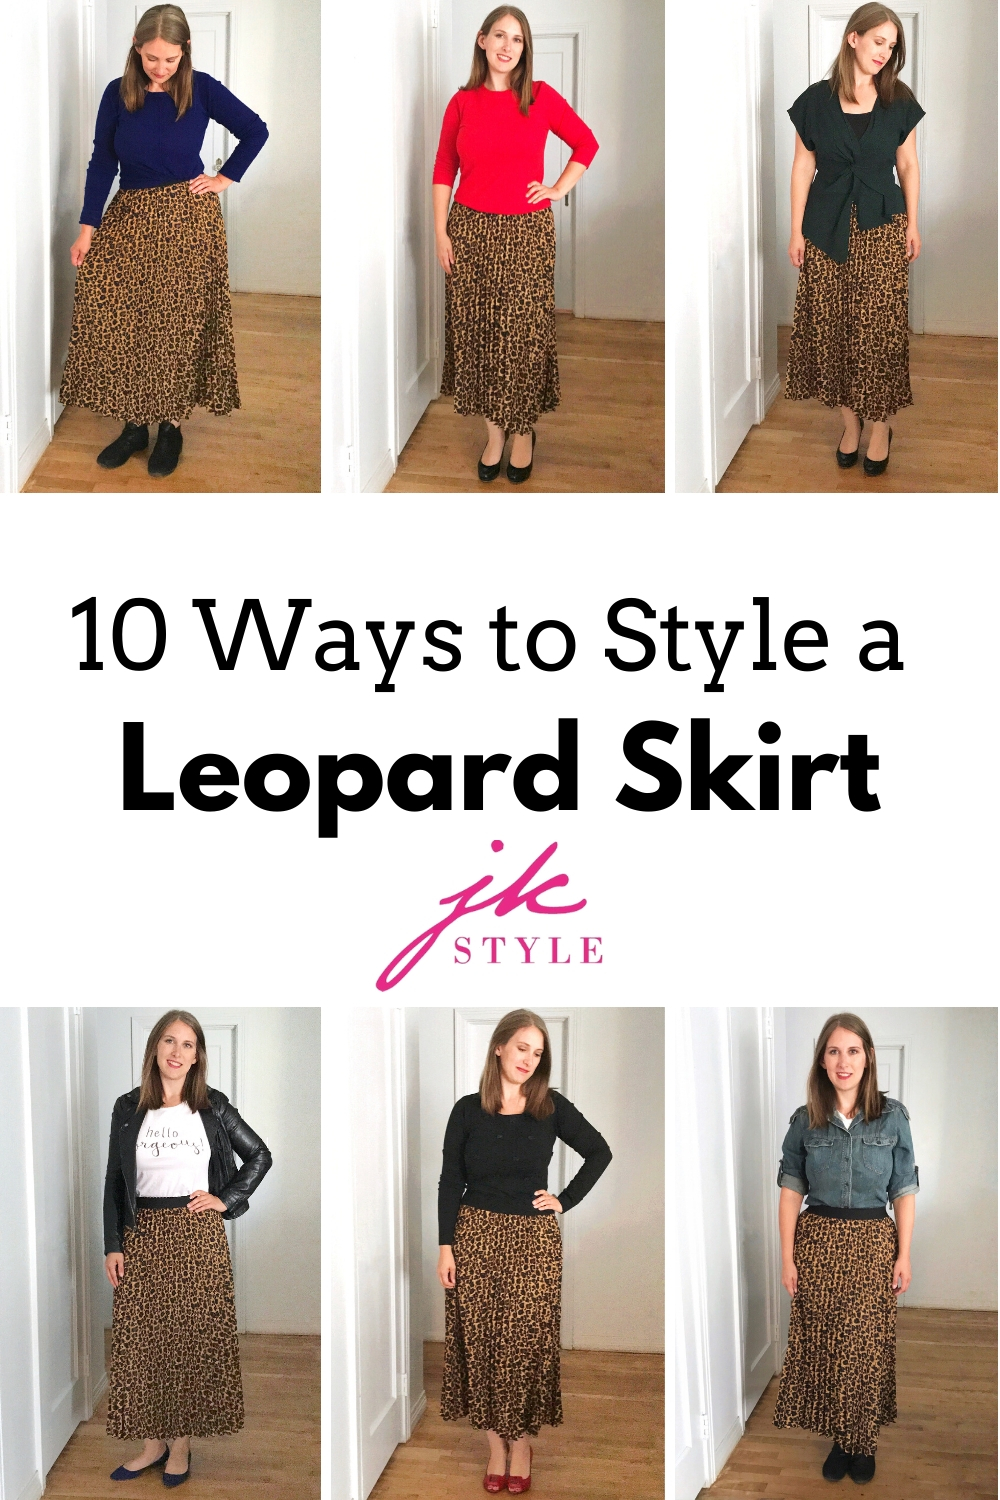 how to style a leopard skirt - JK Style